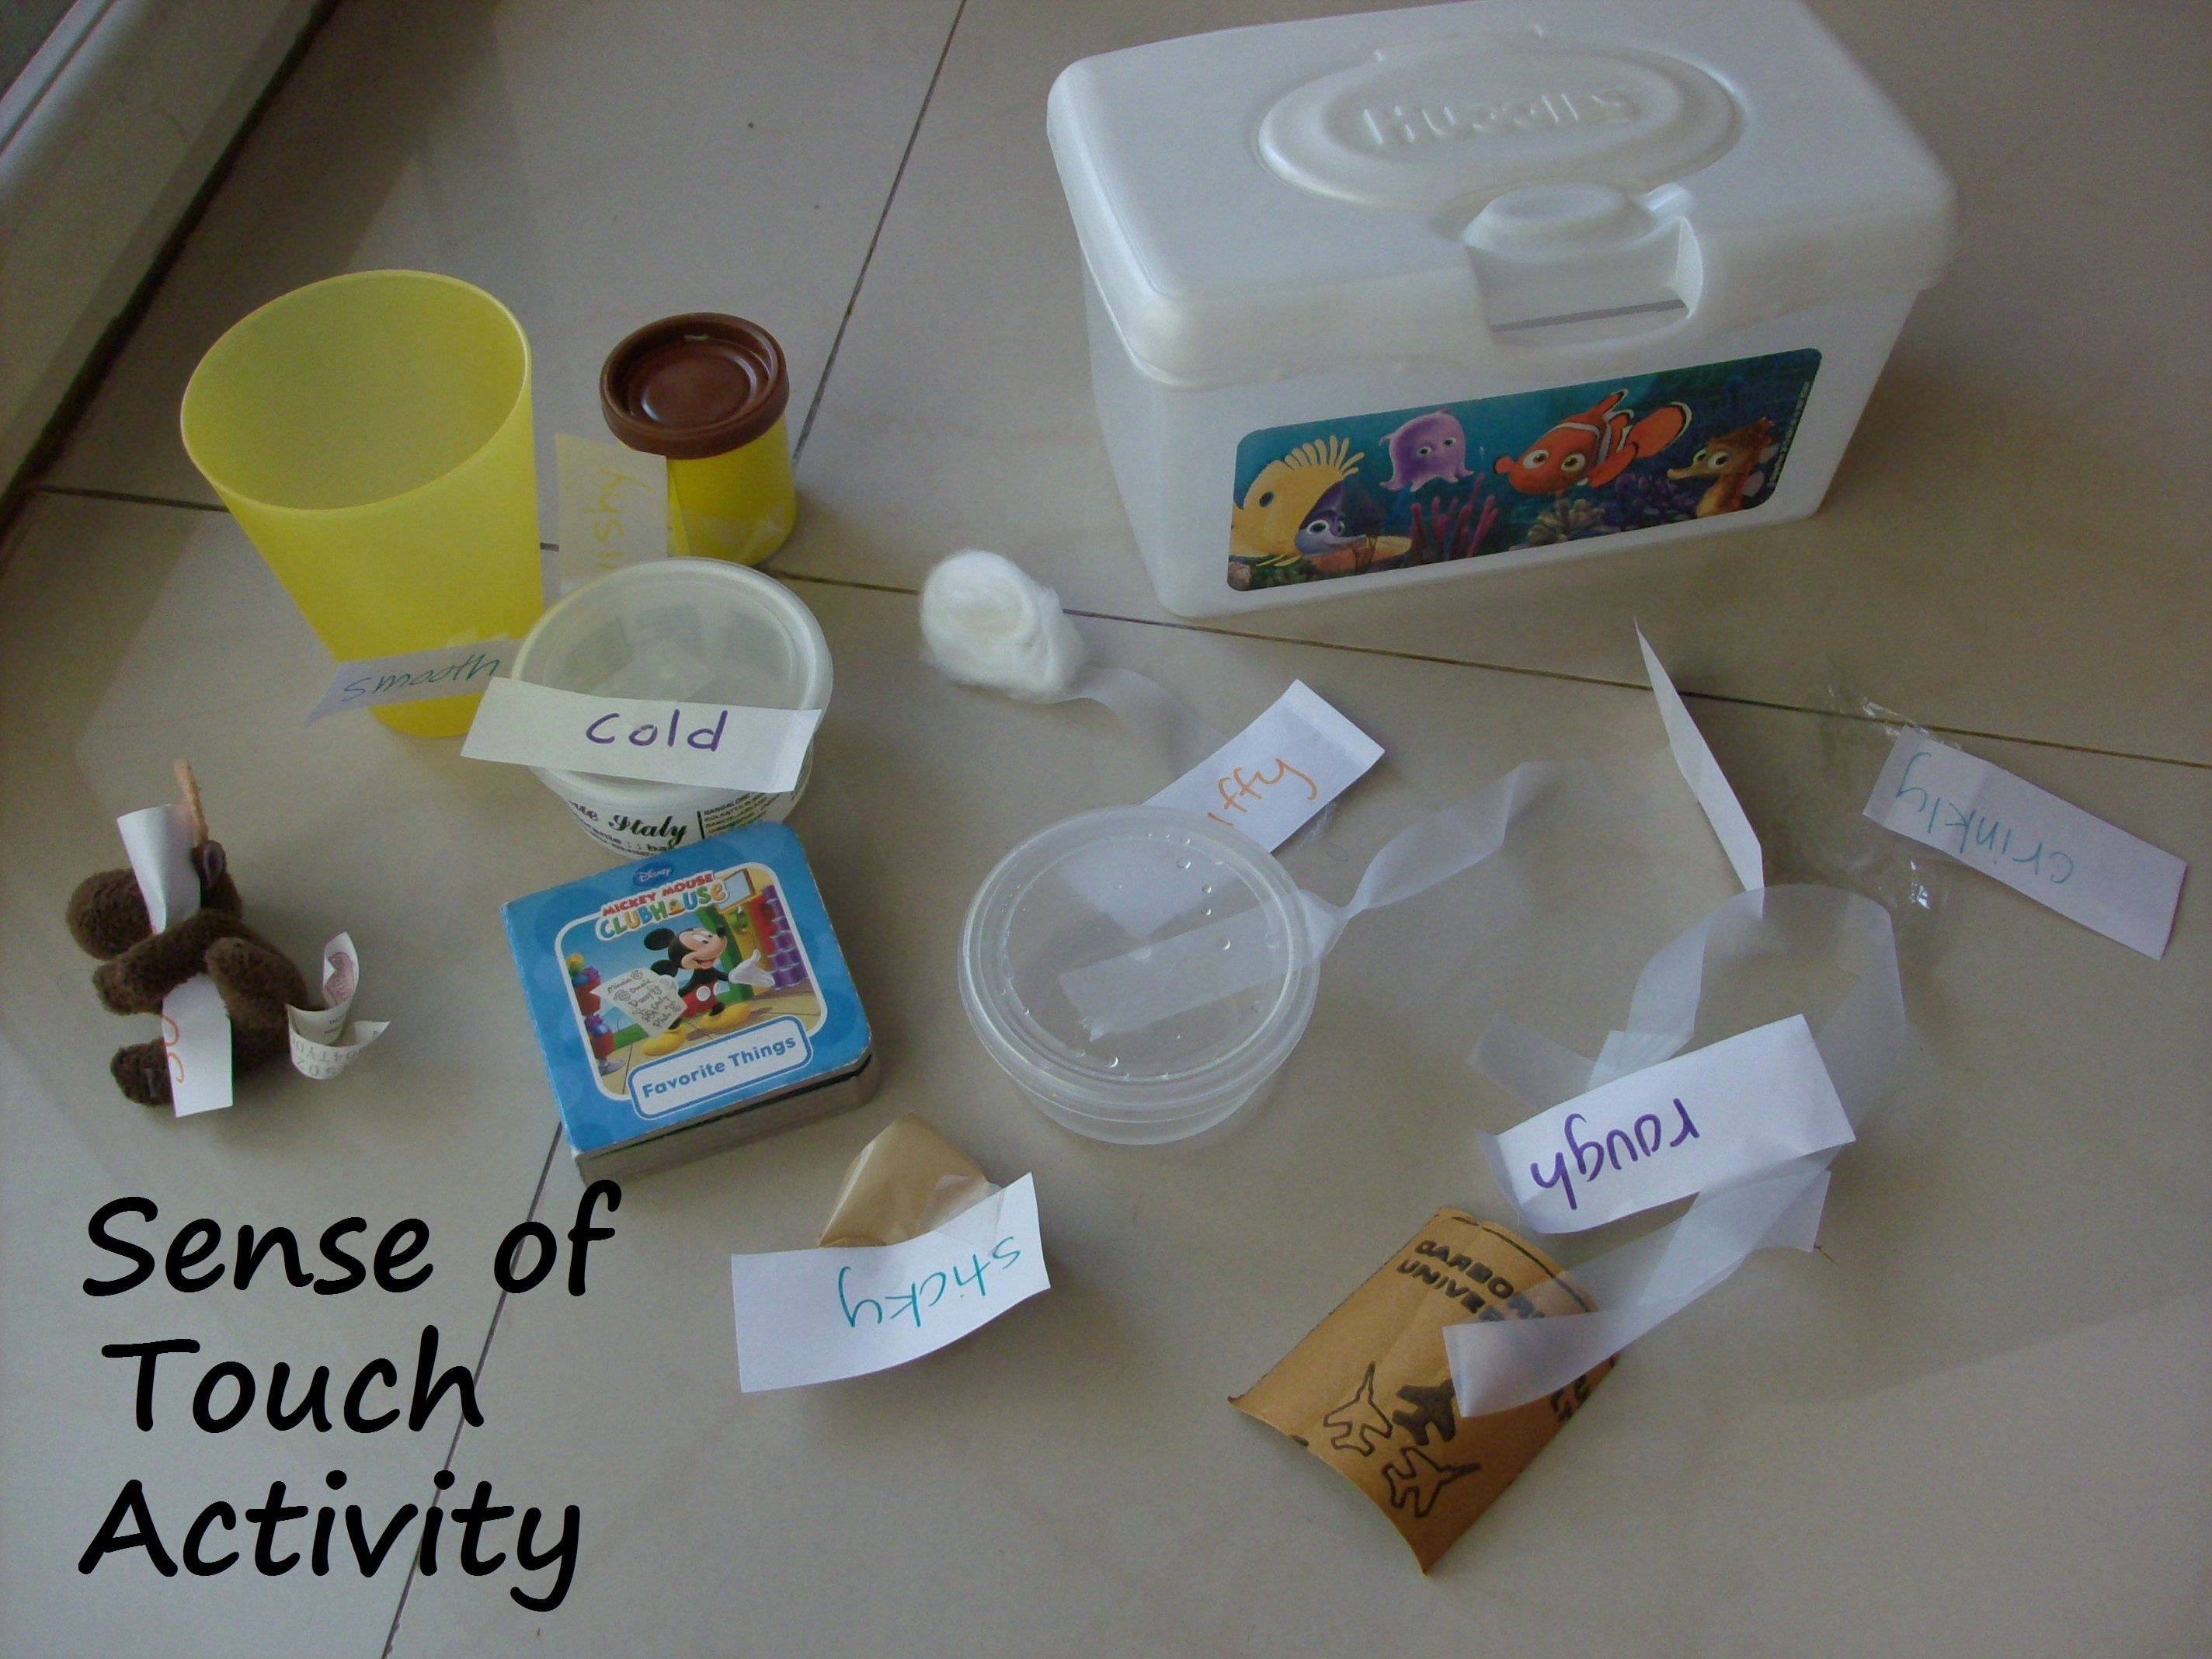 Sense Of Touch Activity For Preschoolers Cold Ice Sticky